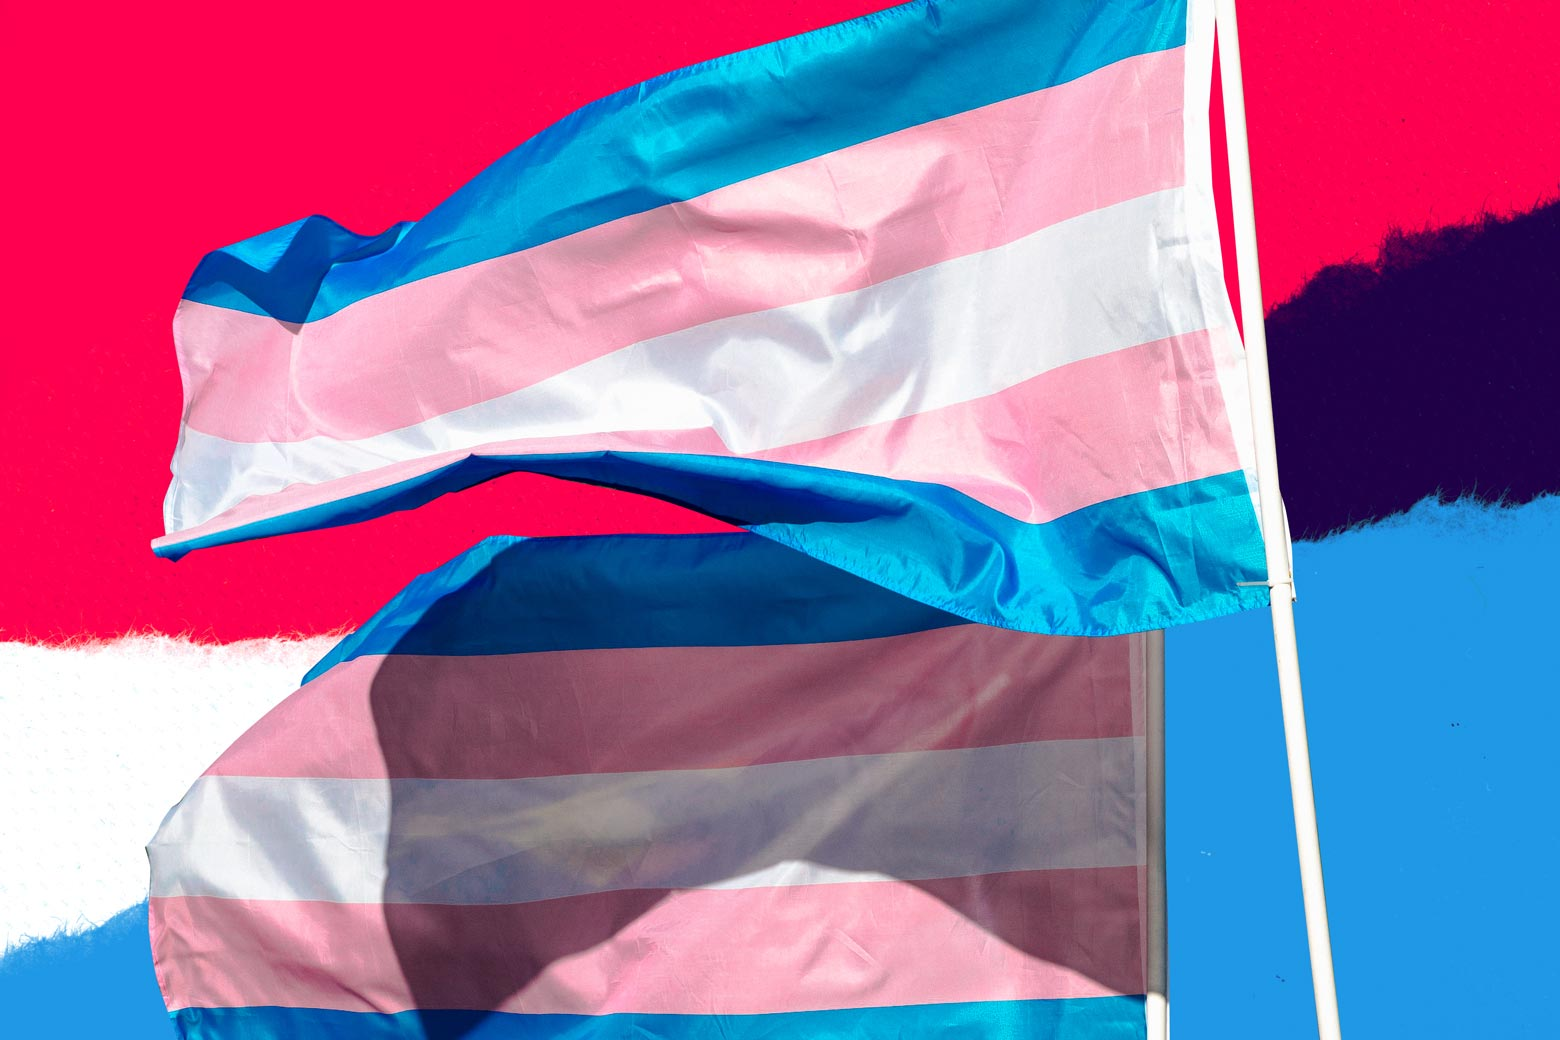 Photo illustration: two transgender flags against a background stylized like the transgender flag. Photo illustration by Slate. Photo by Getty Images.